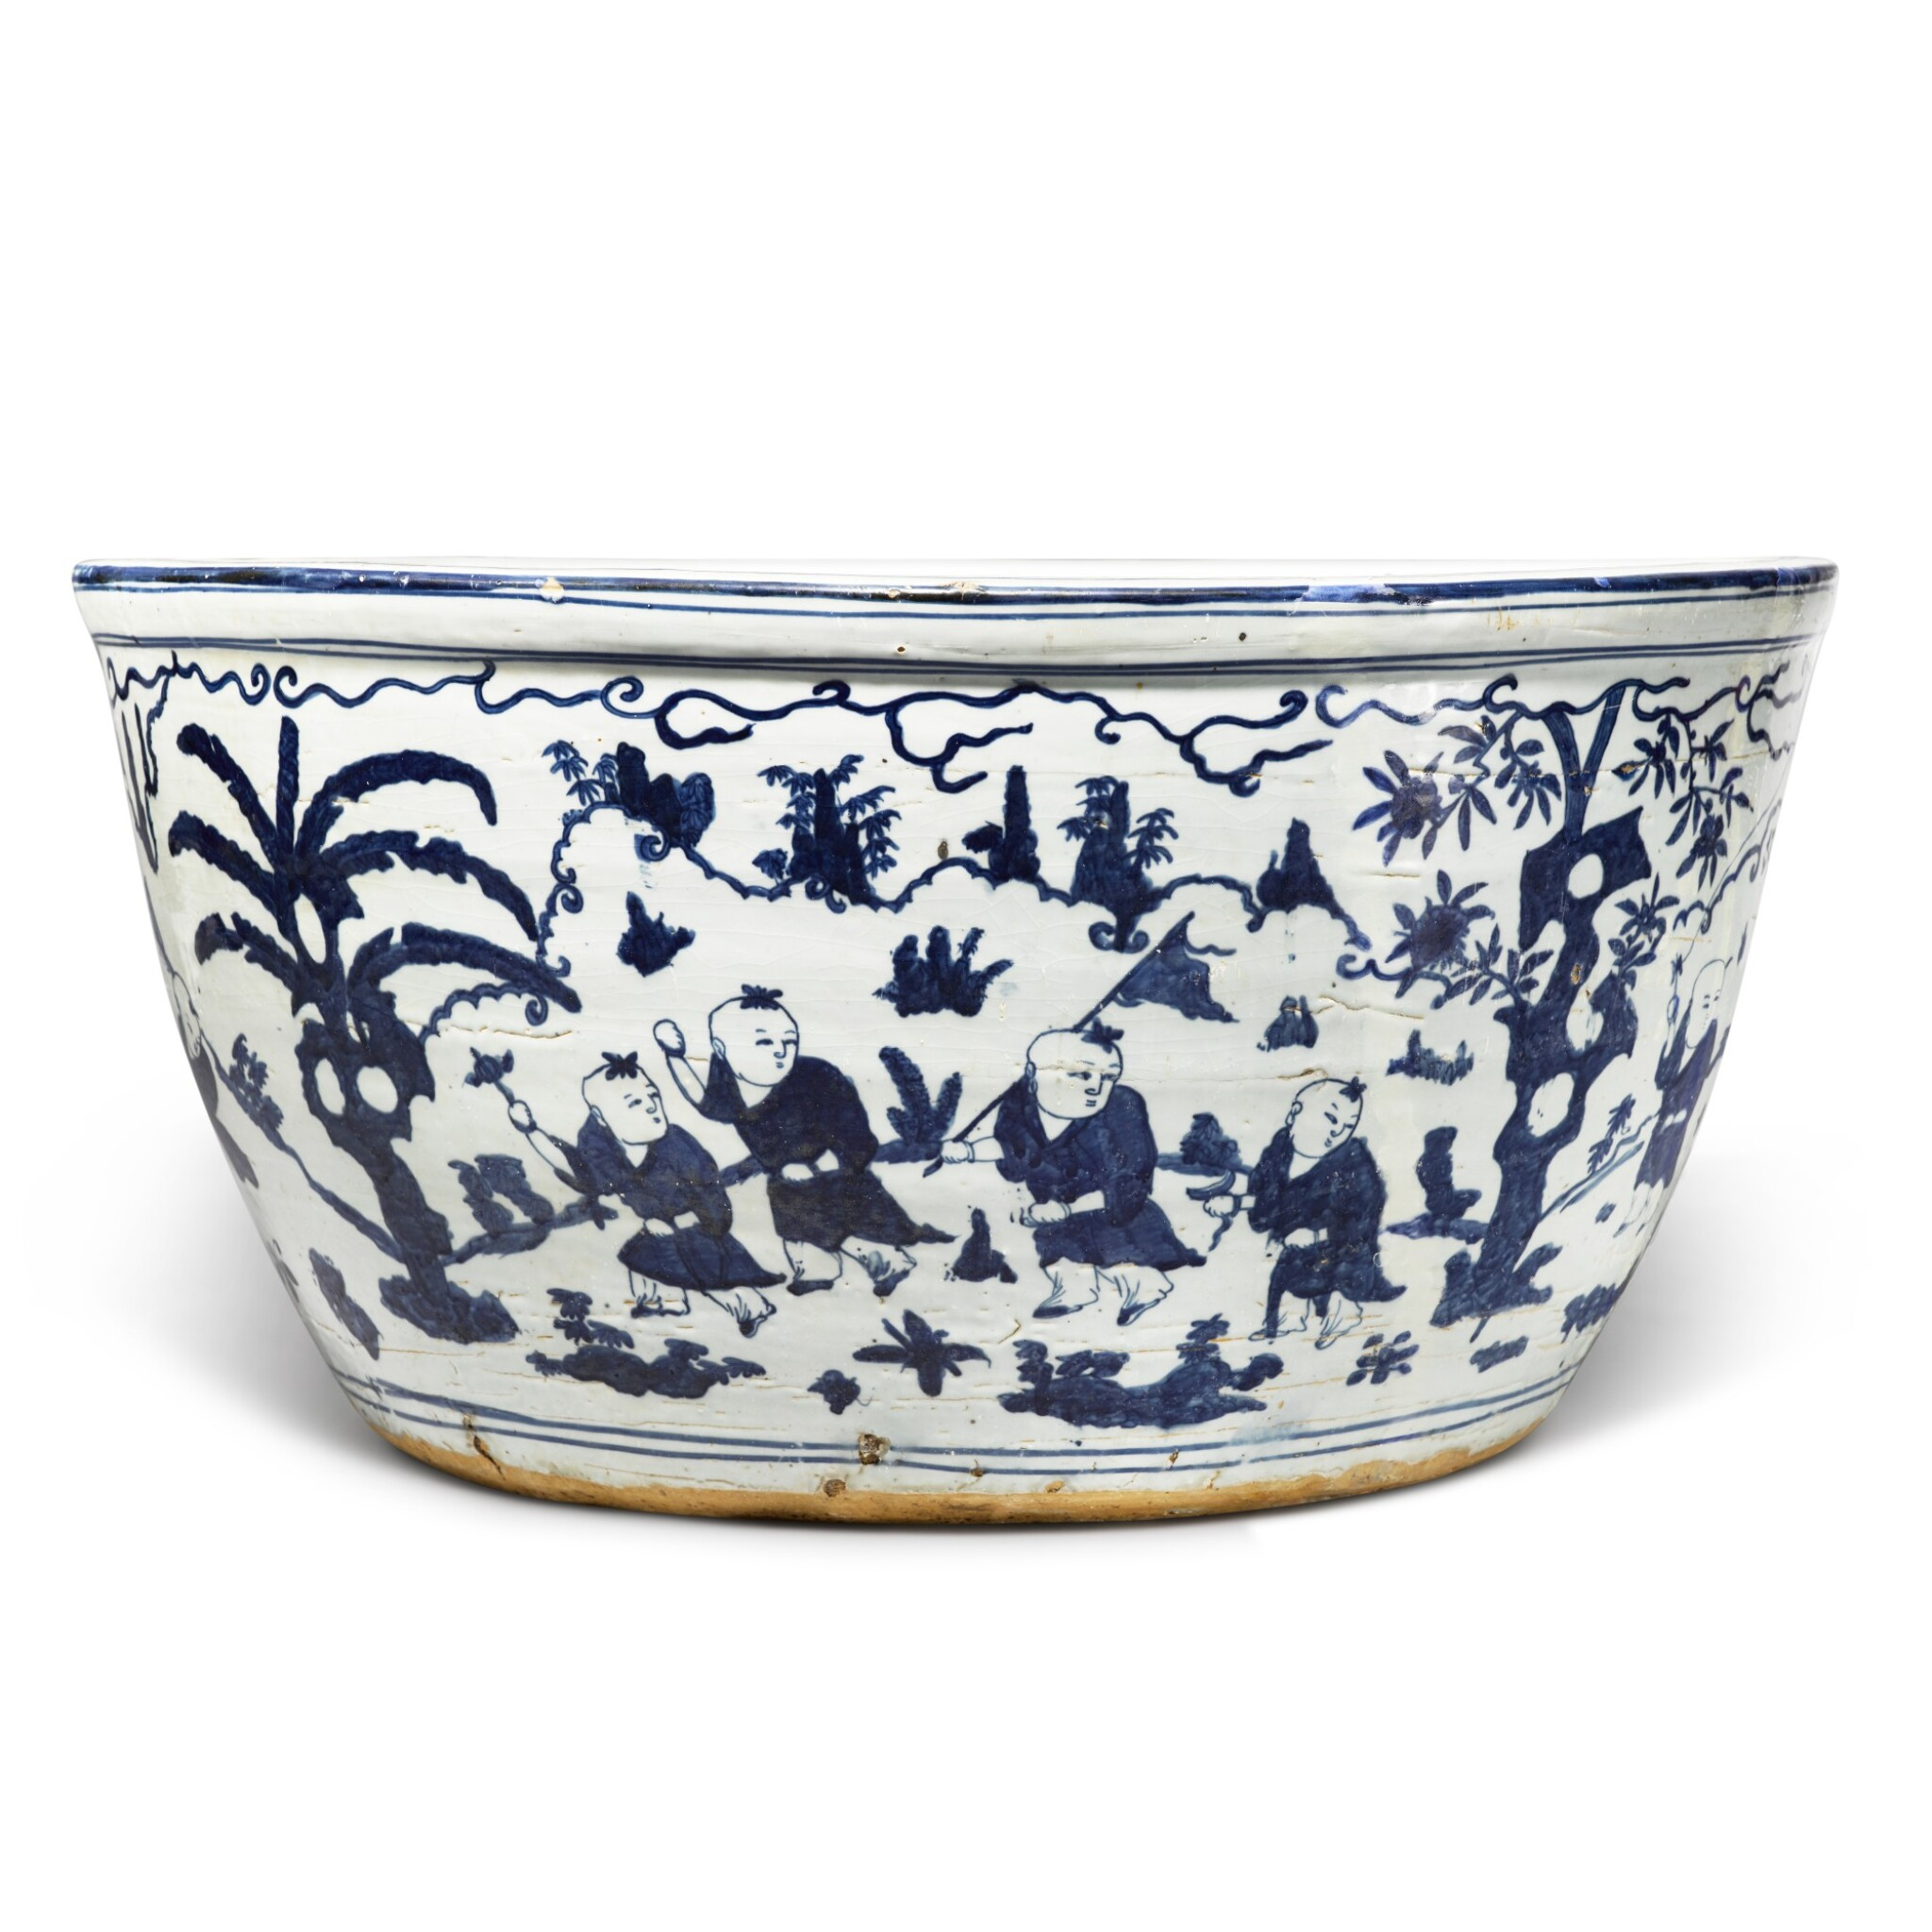 View full screen - View 1 of Lot 87. A very large blue and white 'boys' fishbowl, Mark and period of Jiajing | 明嘉靖 青花嬰戲圖大缸 《大明嘉靖年製》款.